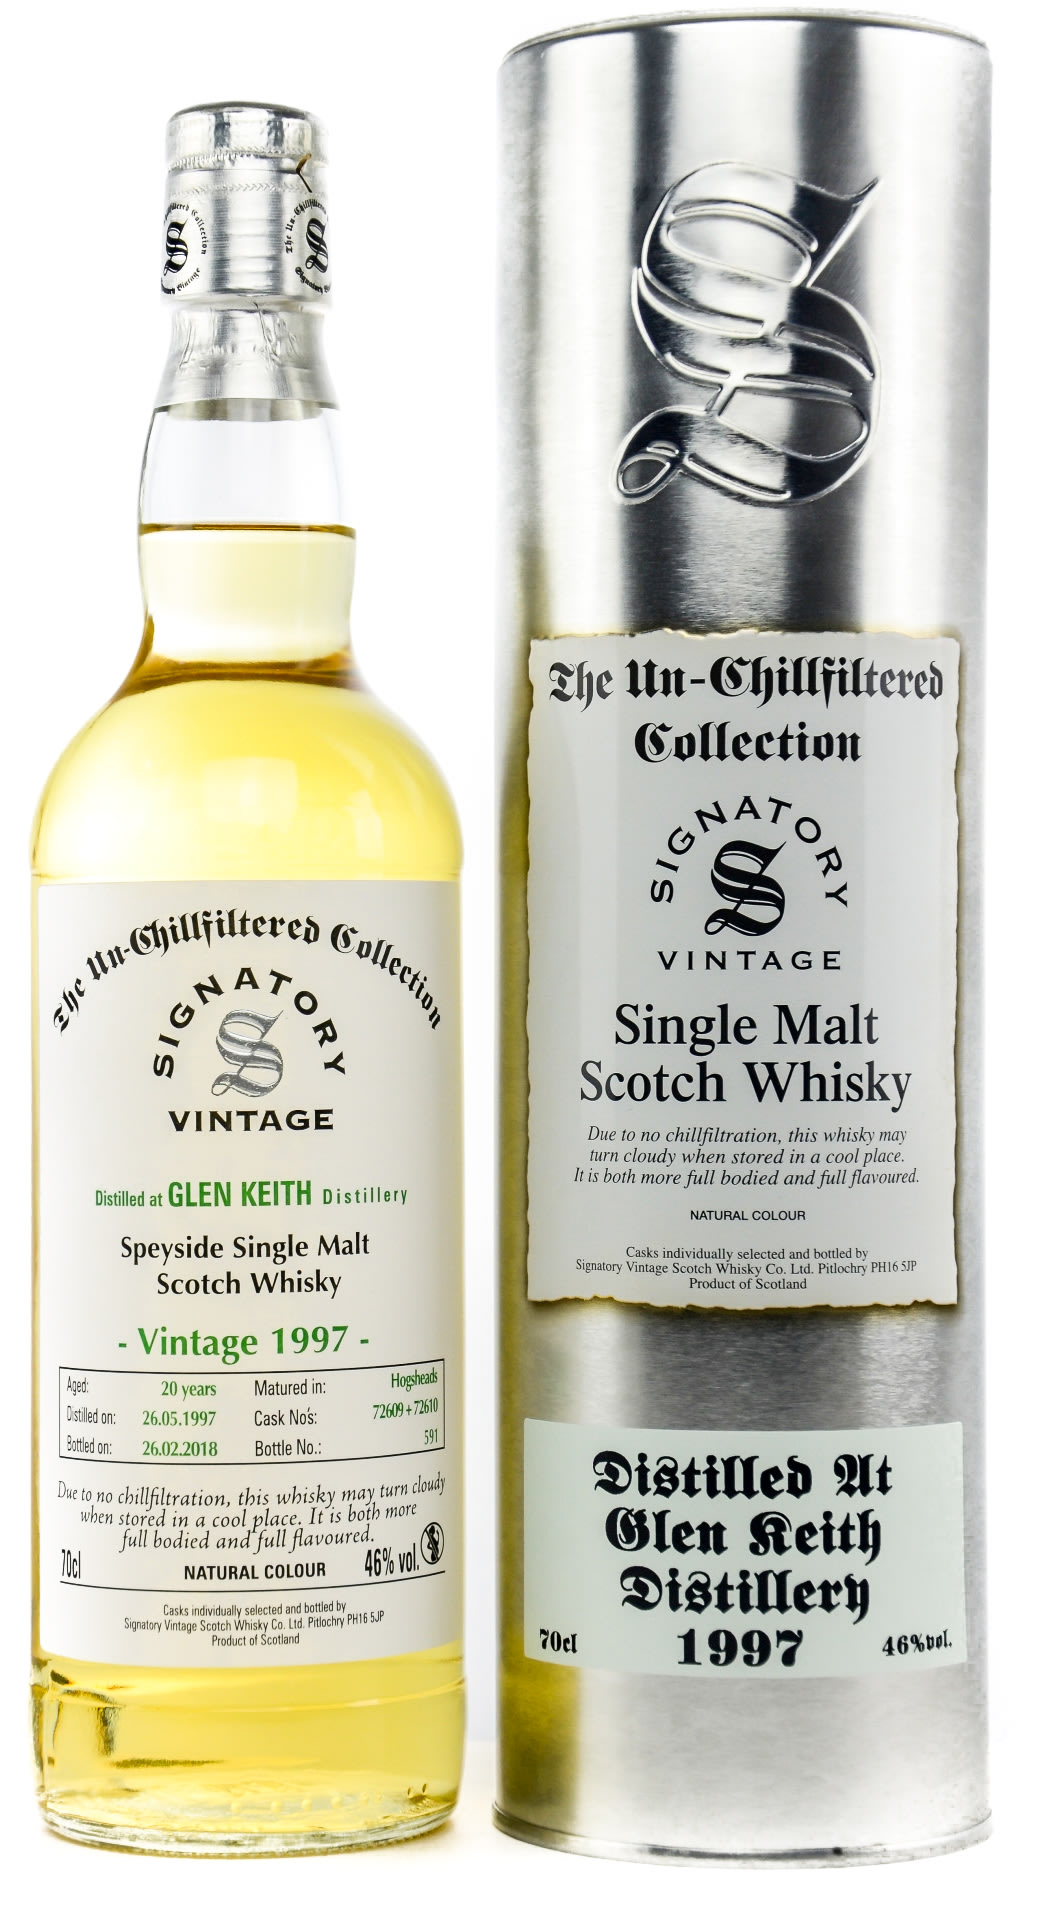 Signatory Vintage Glen Keith 20 Years Speyside Single Malt Scotch Whisky 0,7 l